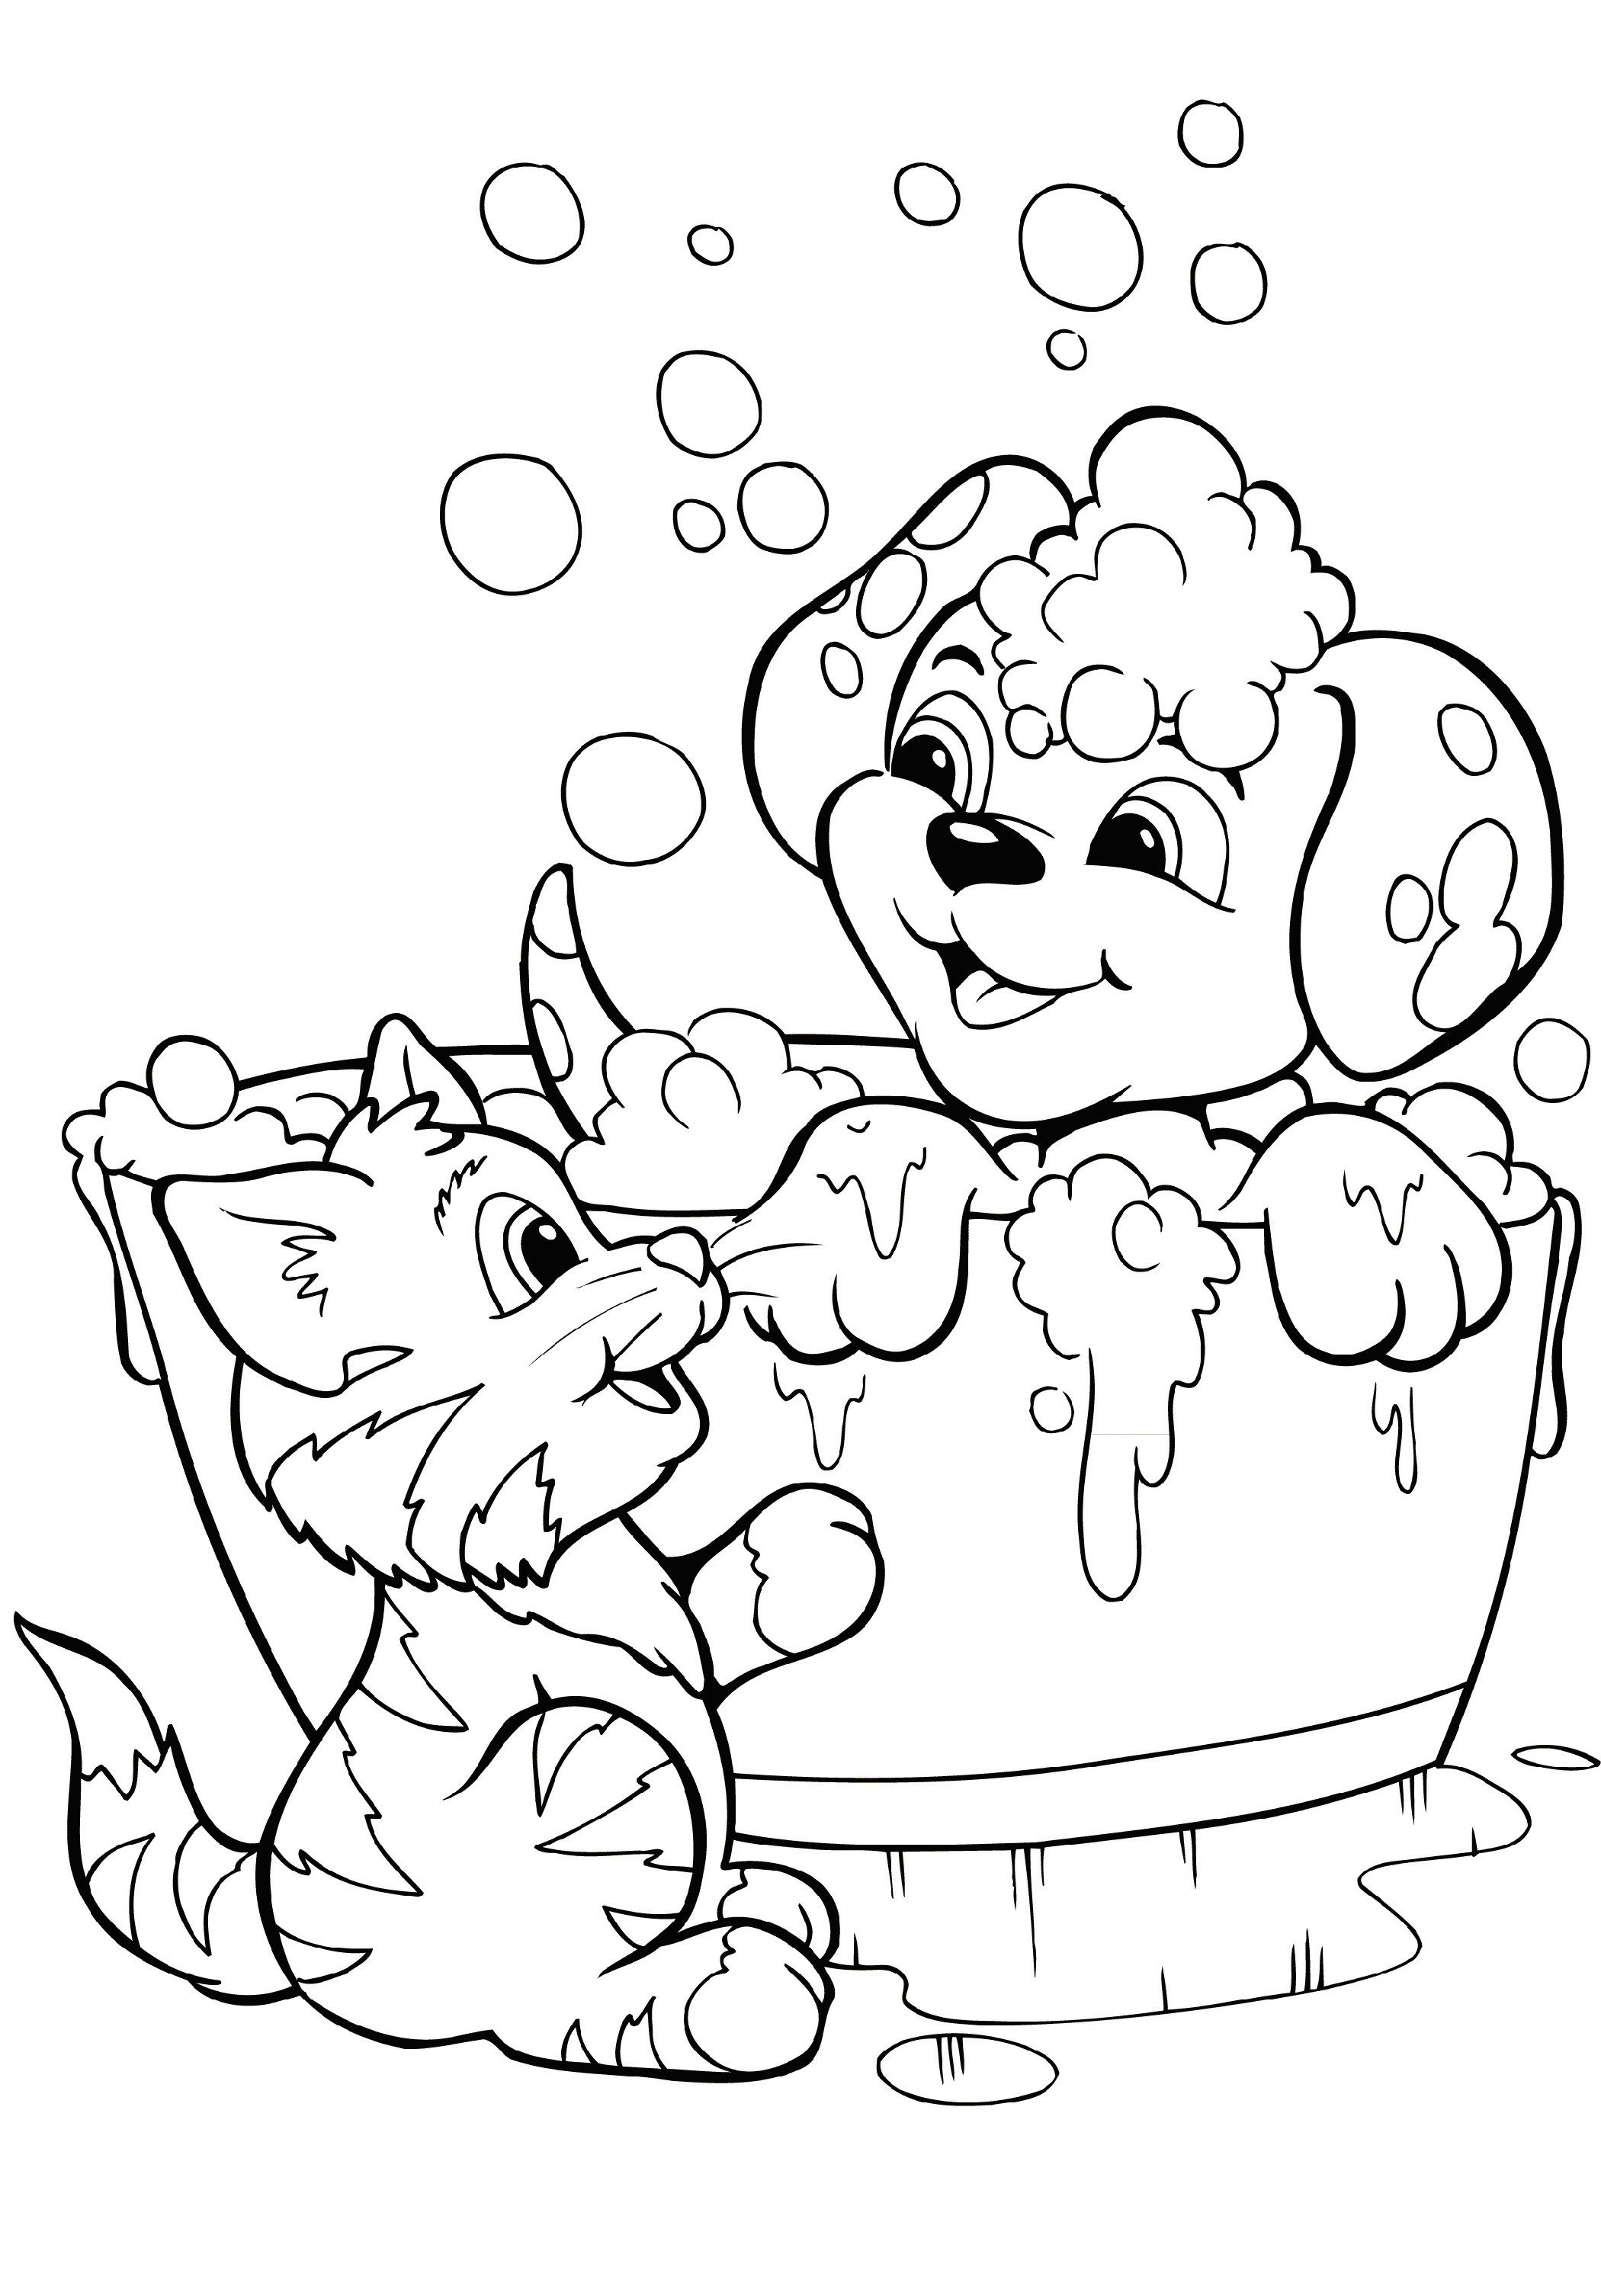 Puppy And Kitten Coloring Pages To Print